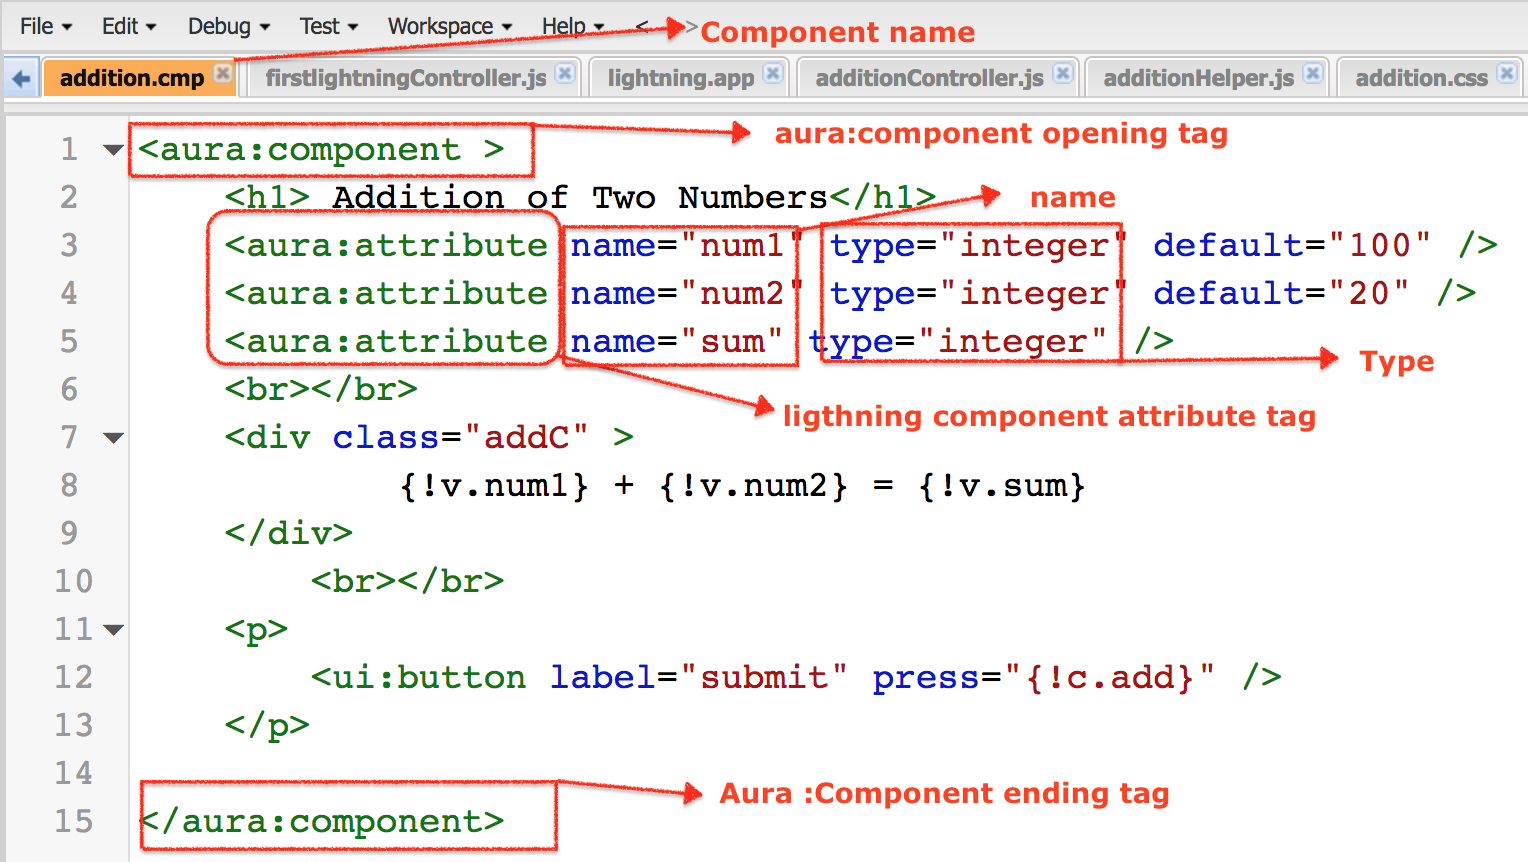 What are lightning Component Attribute : Aura:attribute